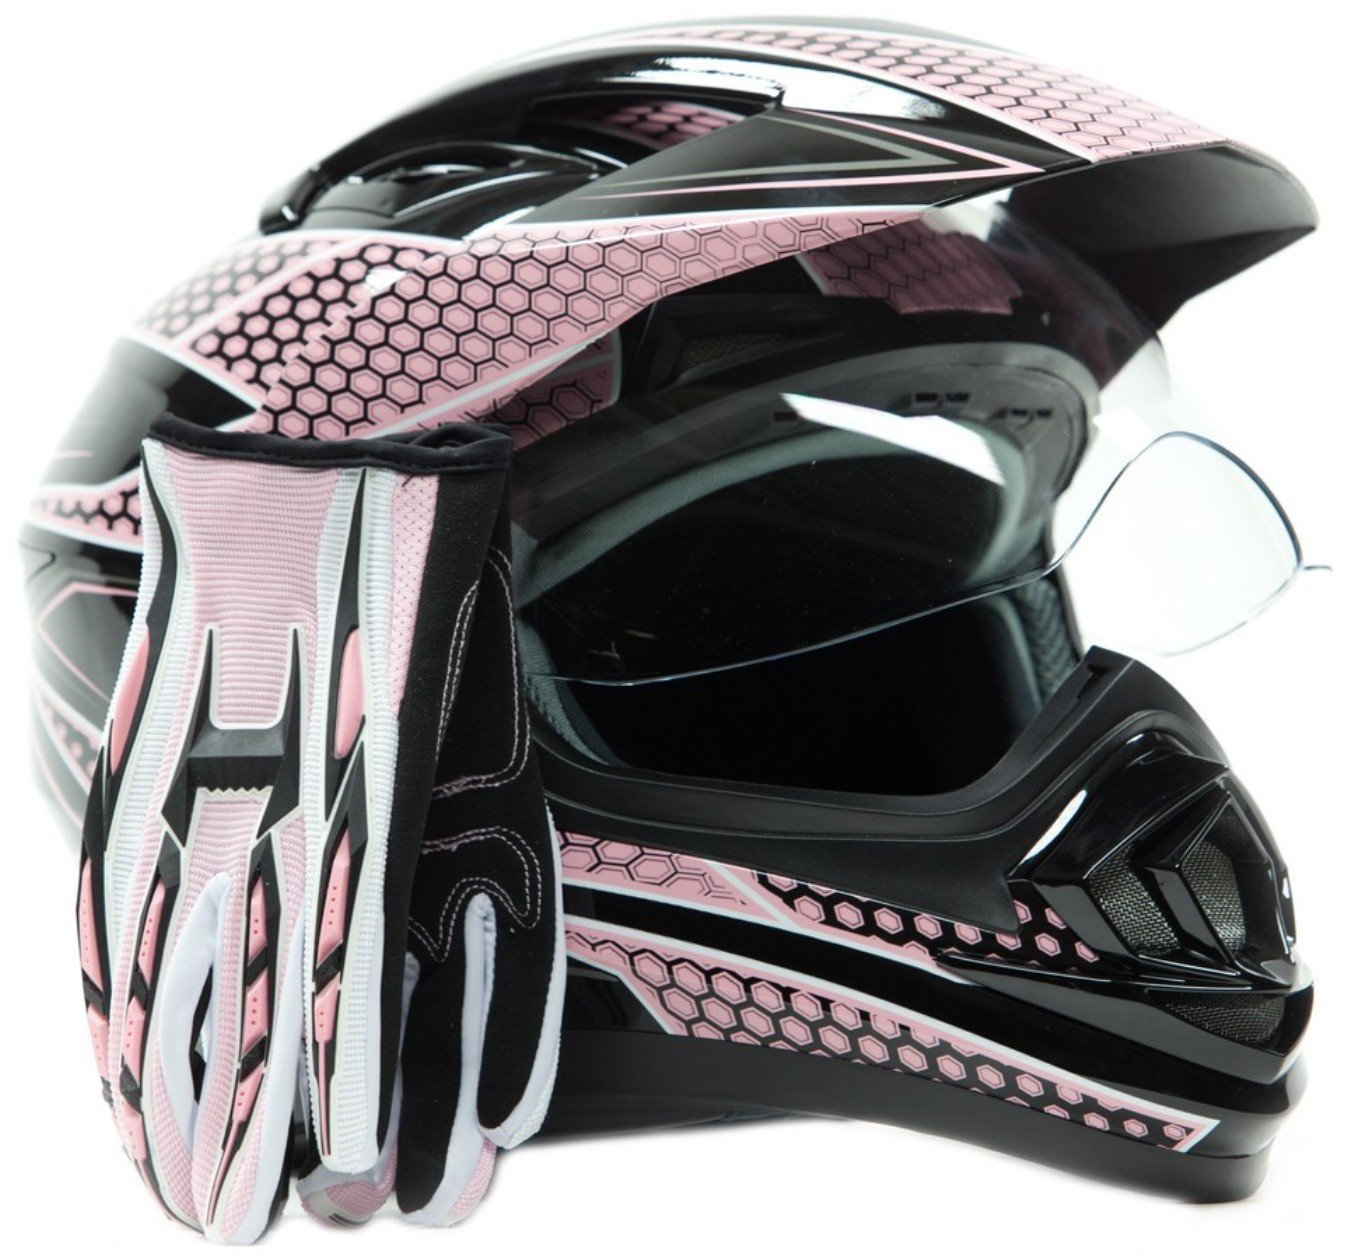 Dual Sport Helmet Combo w/Gloves - Off Road Motocross UTV ATV Motorcycle Enduro - Pink - Medium